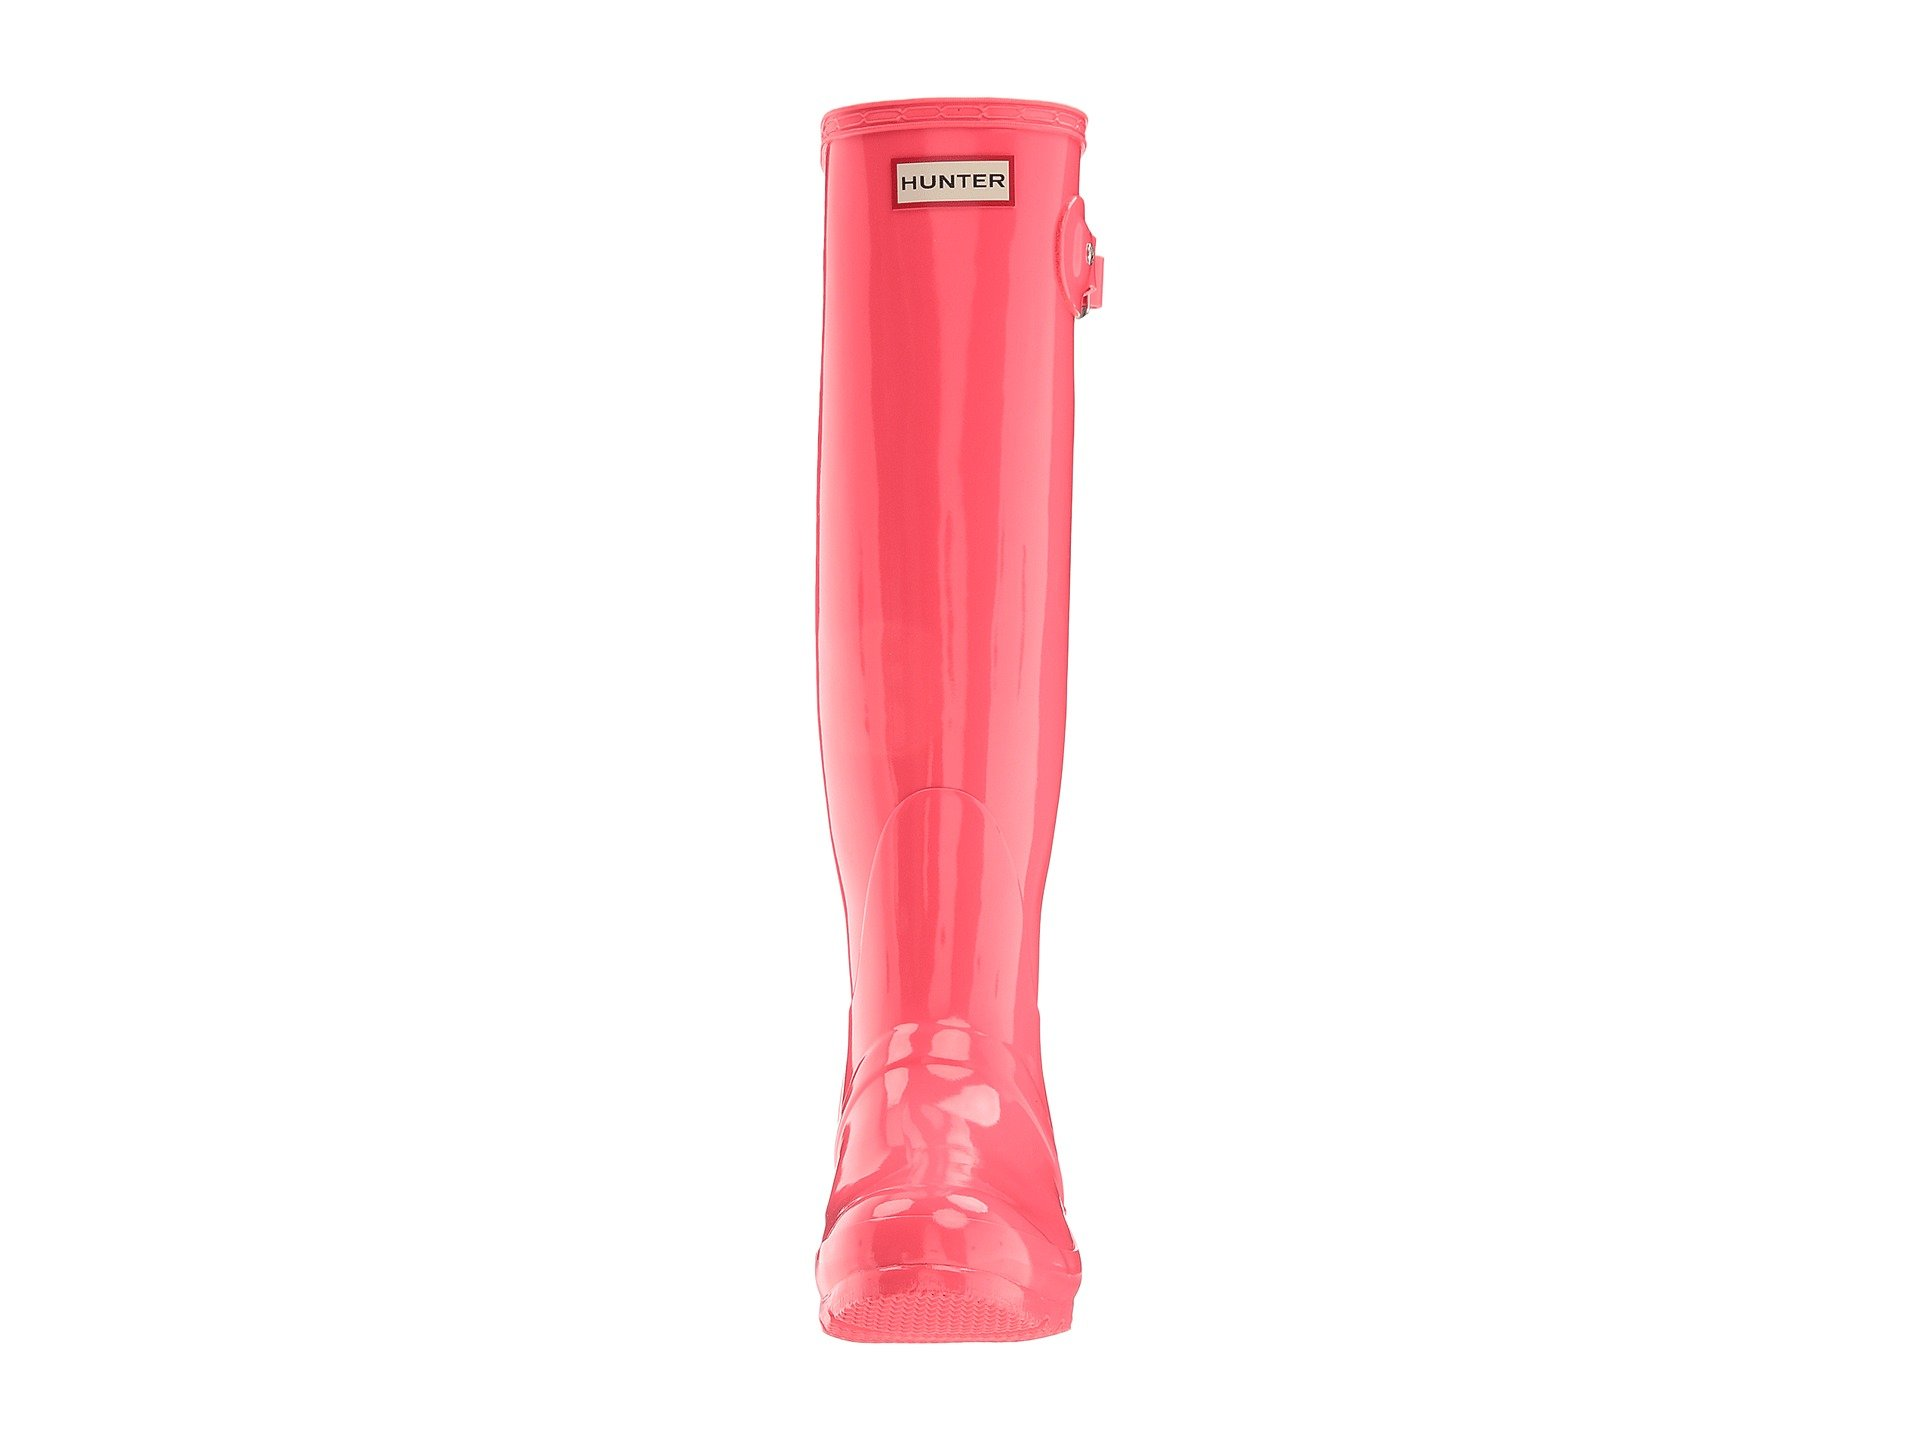 Hyper Pink Original Rain Hunter Boots Gloss Tall XxFwqnA74